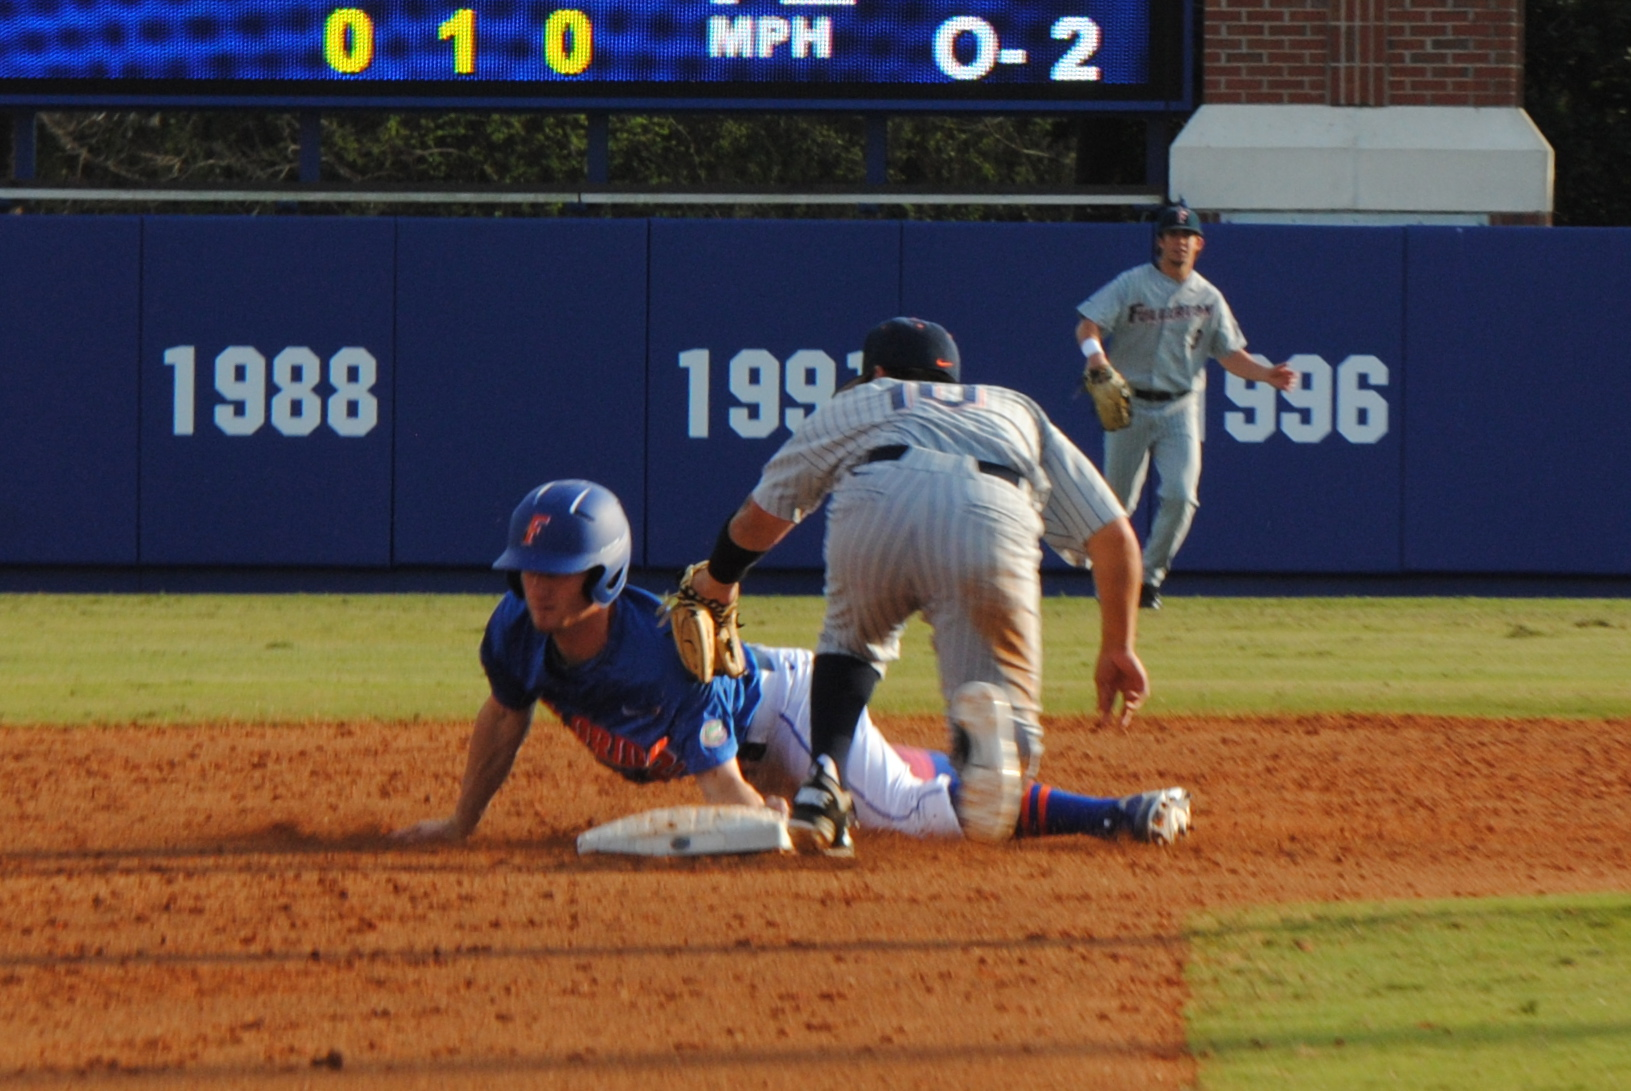 Florida Freshman Casey Turgeon slides into second base.